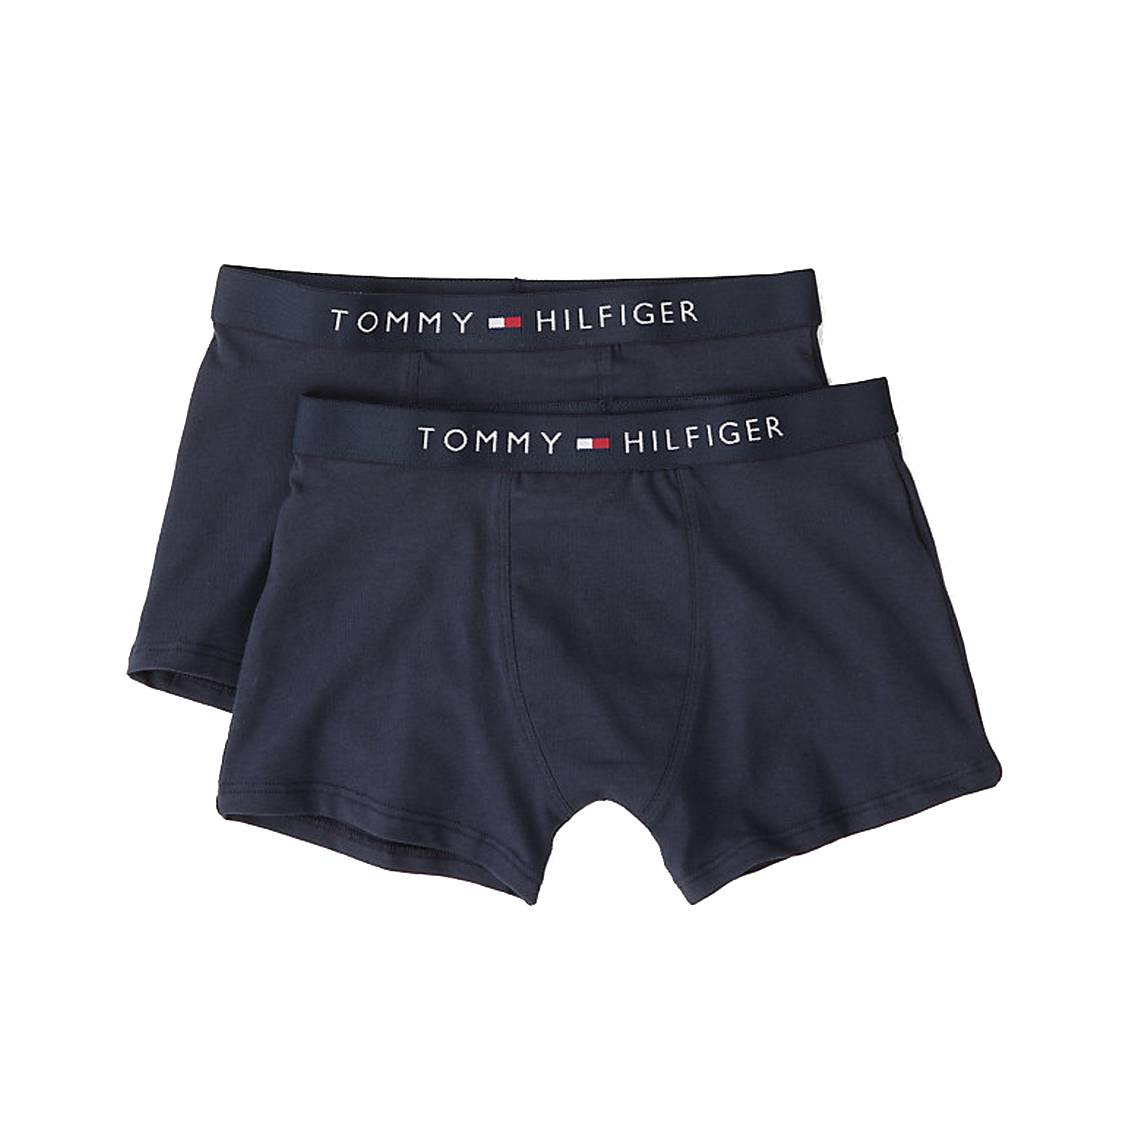 Lot de 2 boxers  en coton stretch bleu marine